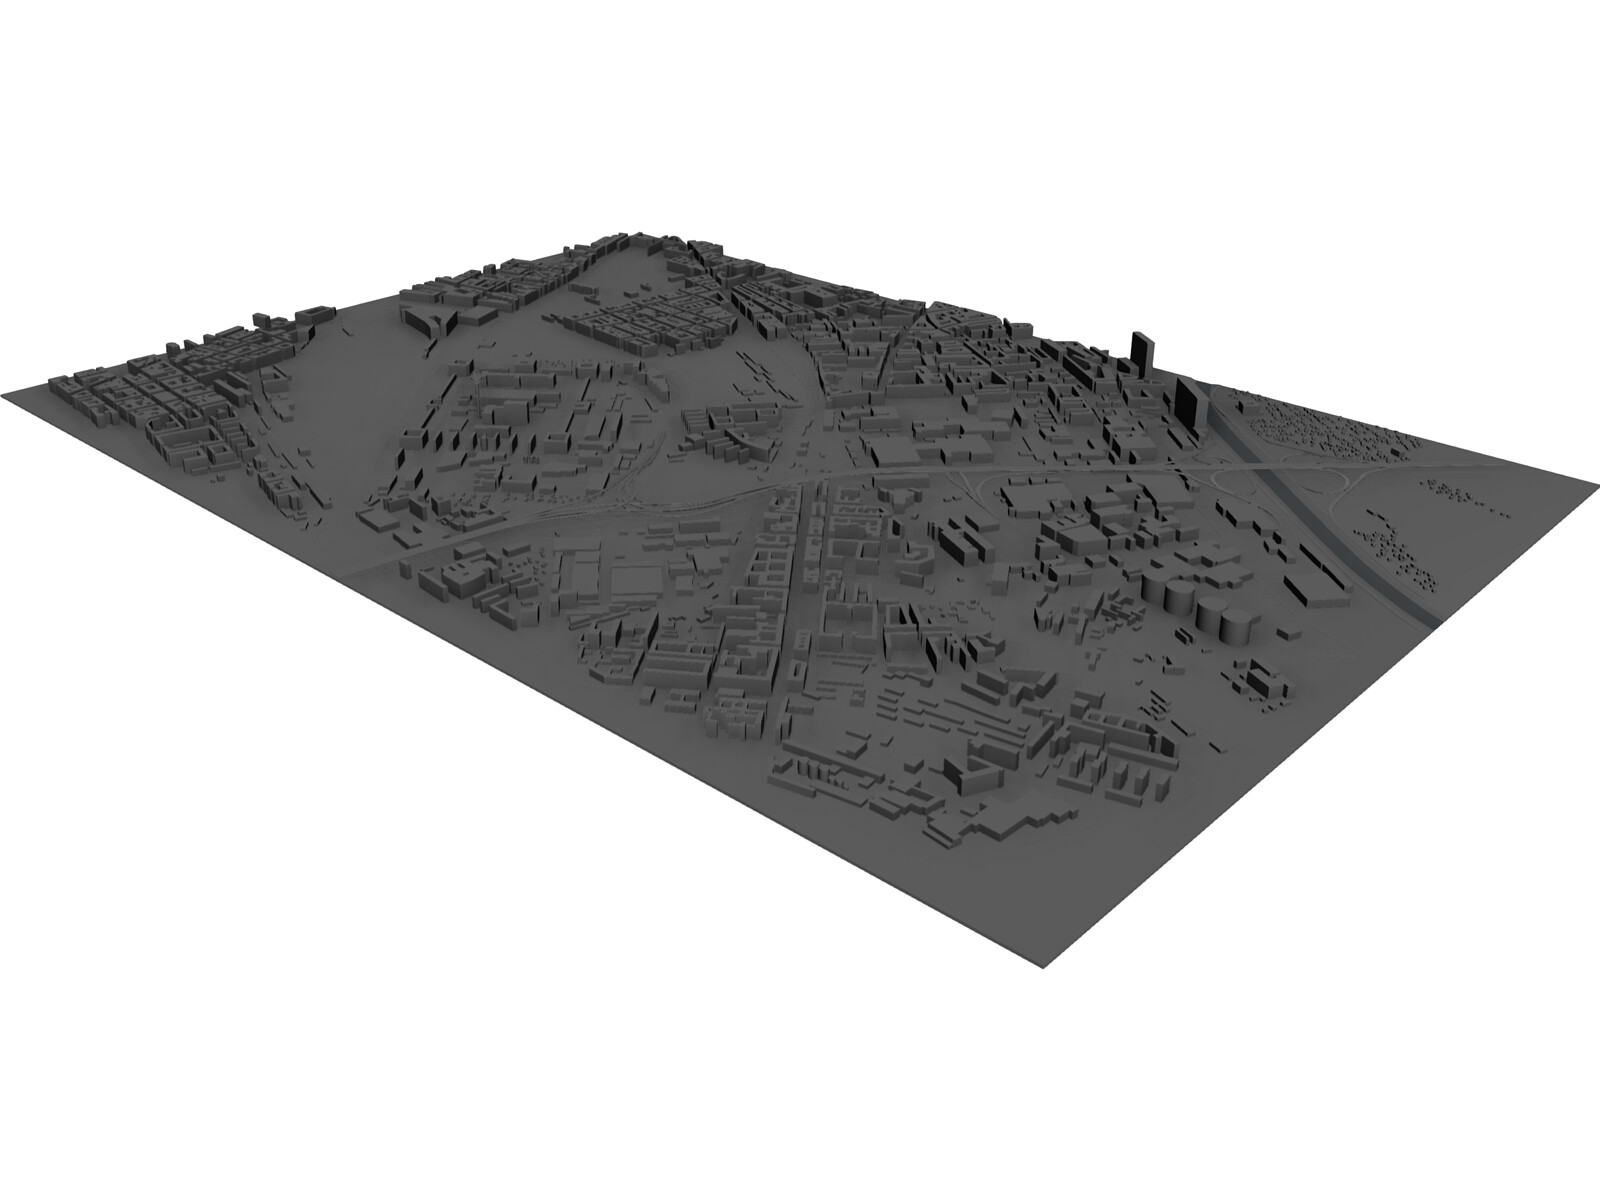 Southeast Vienna 3D Model